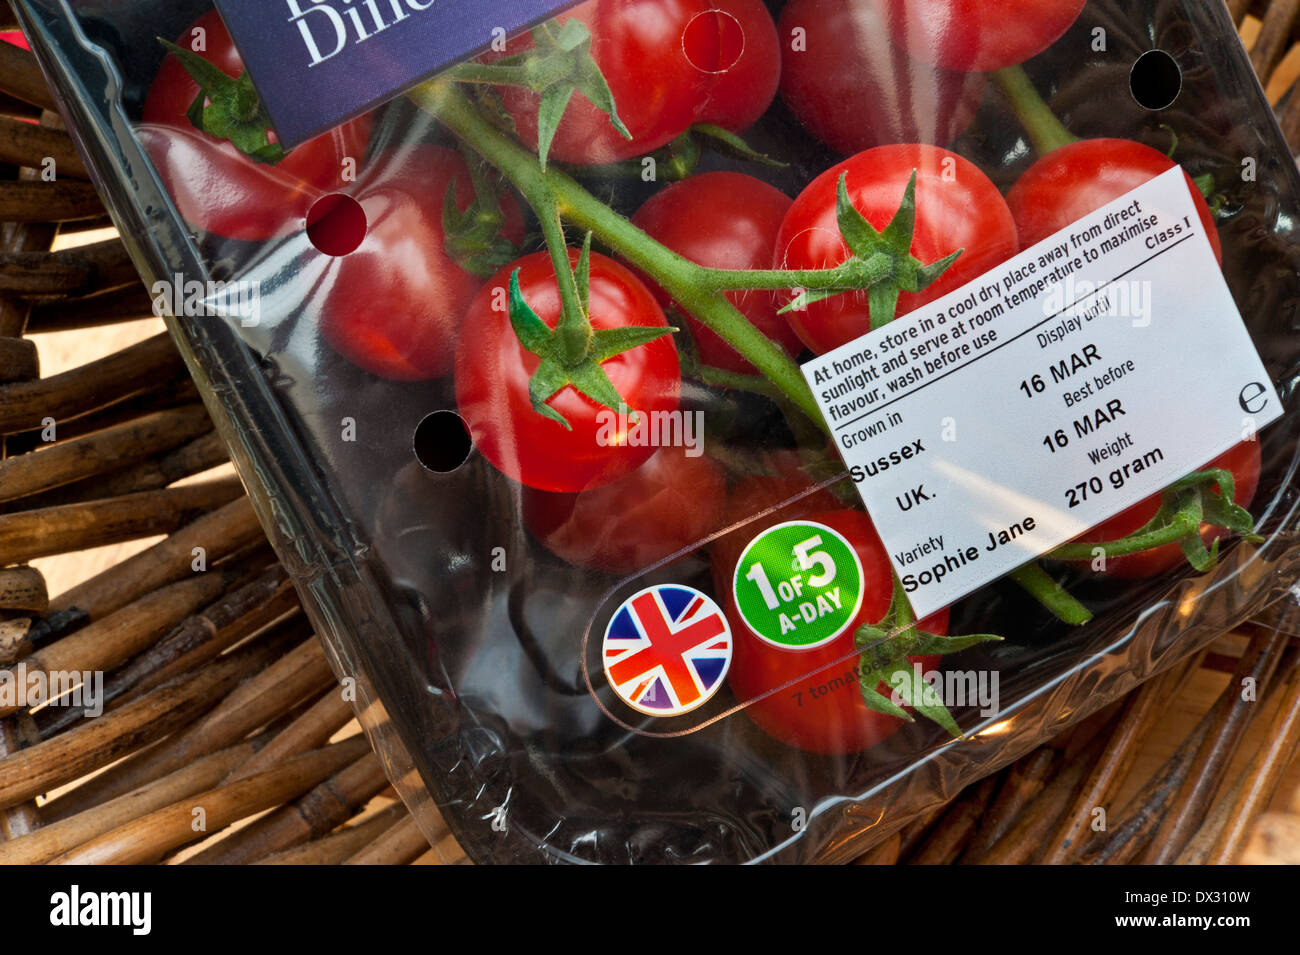 english sophie jane vine tomatoes in supermarket